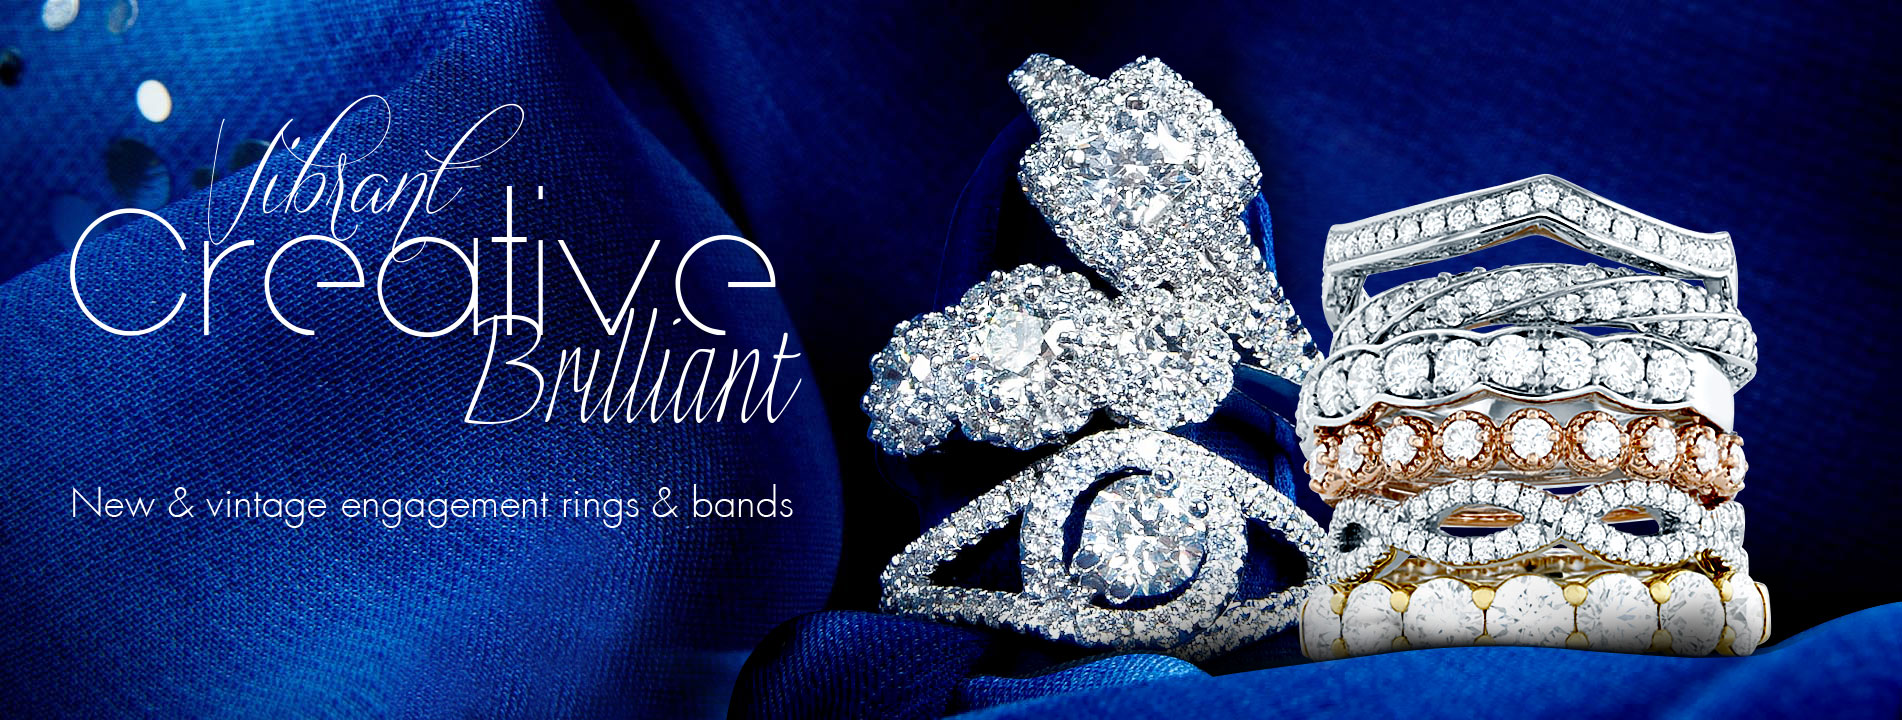 Vibrant Createive Brilliant New and Vintage Engagement rings and bands